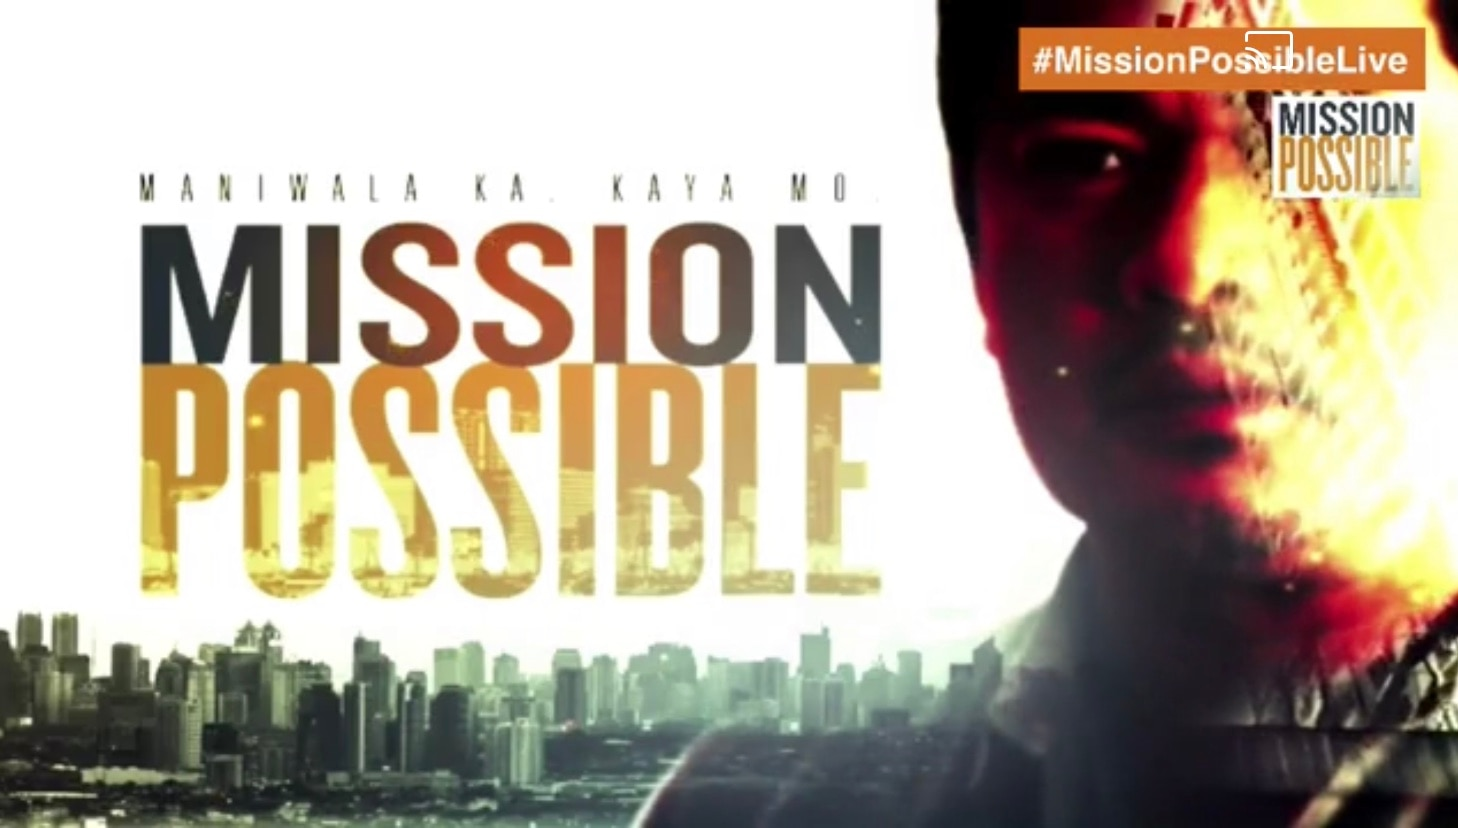 Abangan ang Mission Possible Live sa Facebook 1